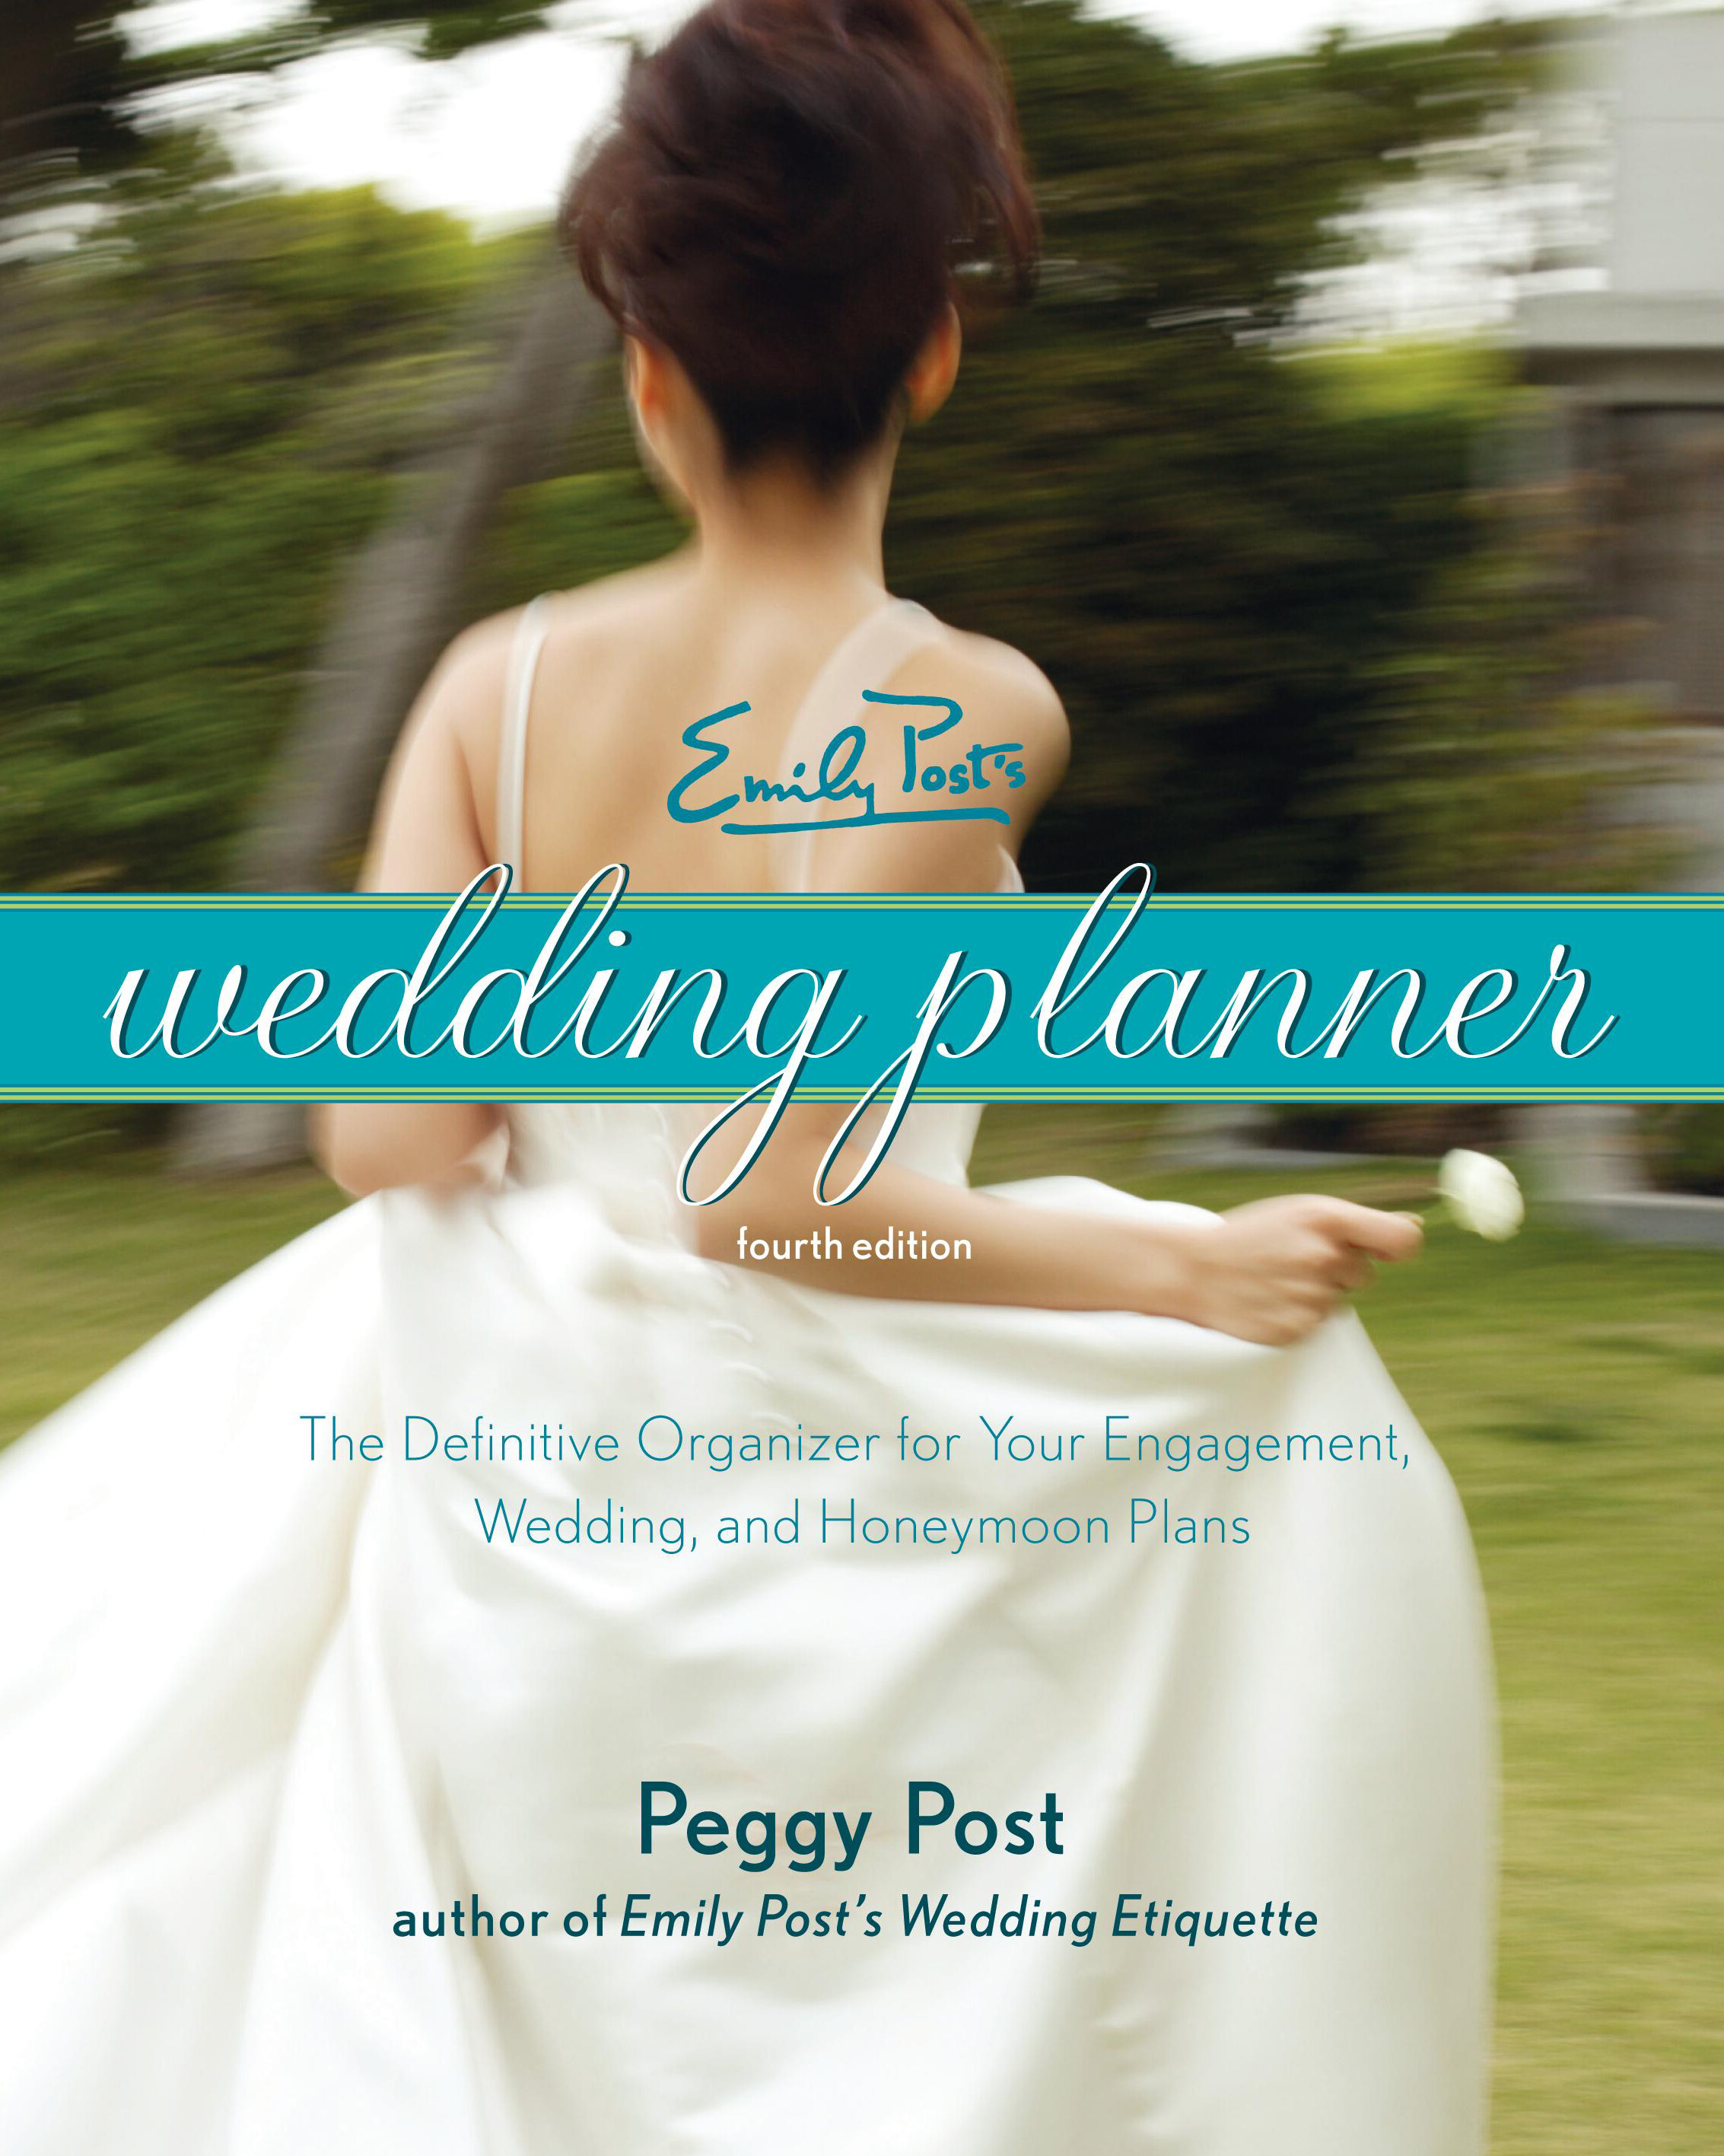 cover image of Emily Post's Wedding Planner showing title on ribbon over image of bride turning away in a white dress